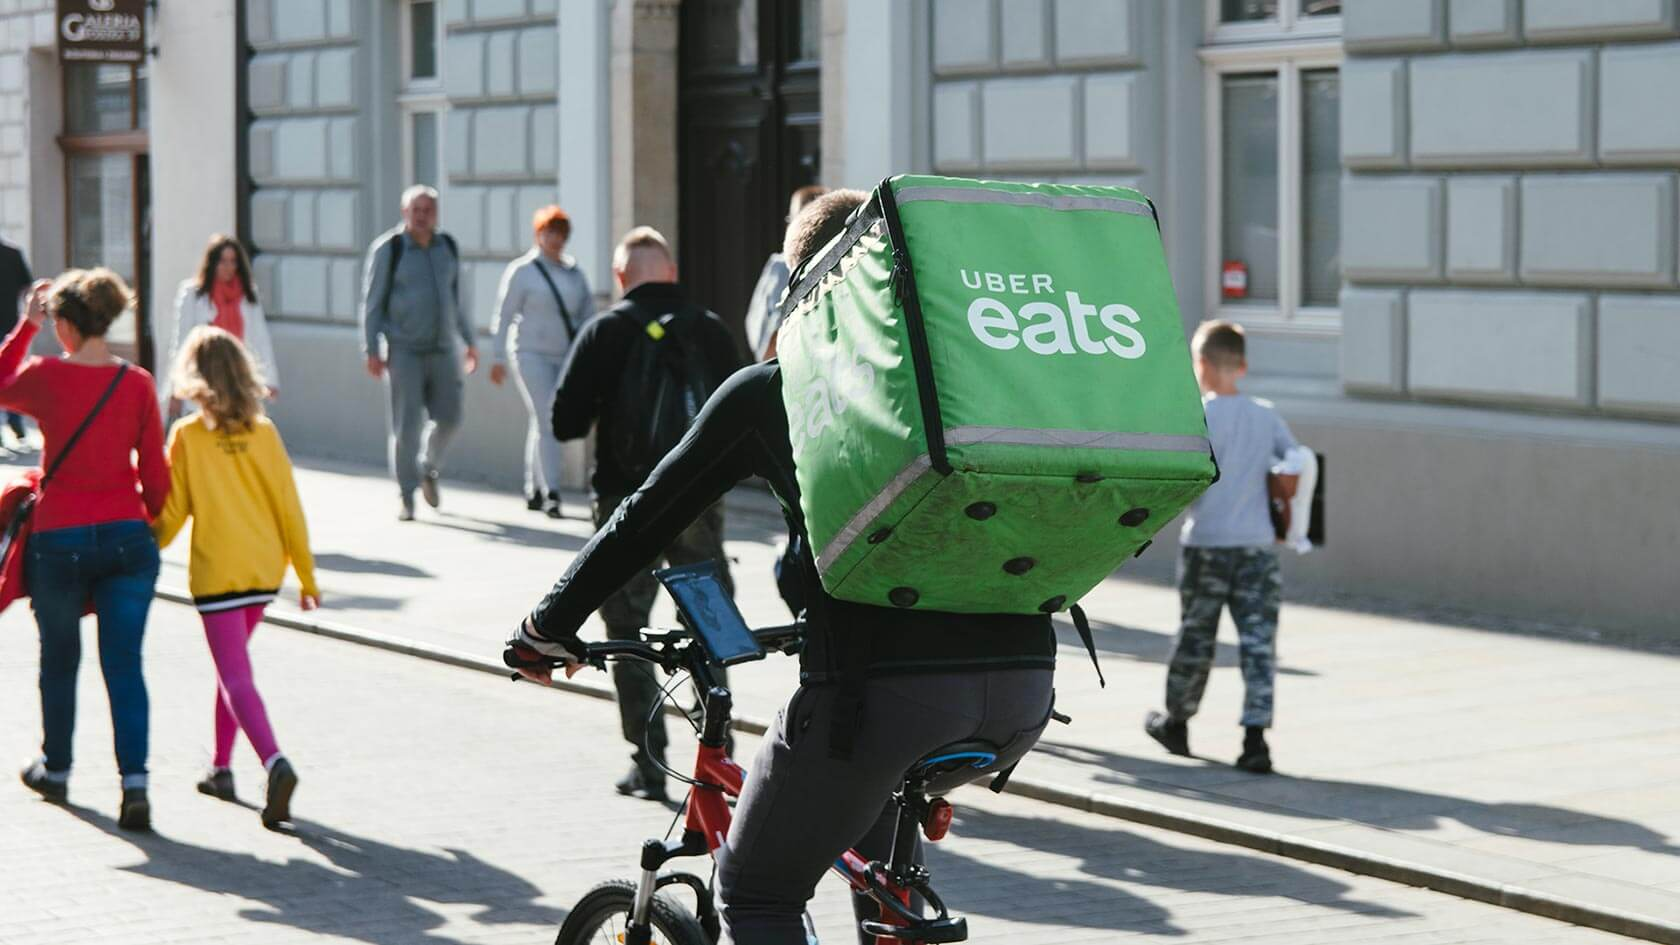 An Uber Eats delivery rider riding his bicycle